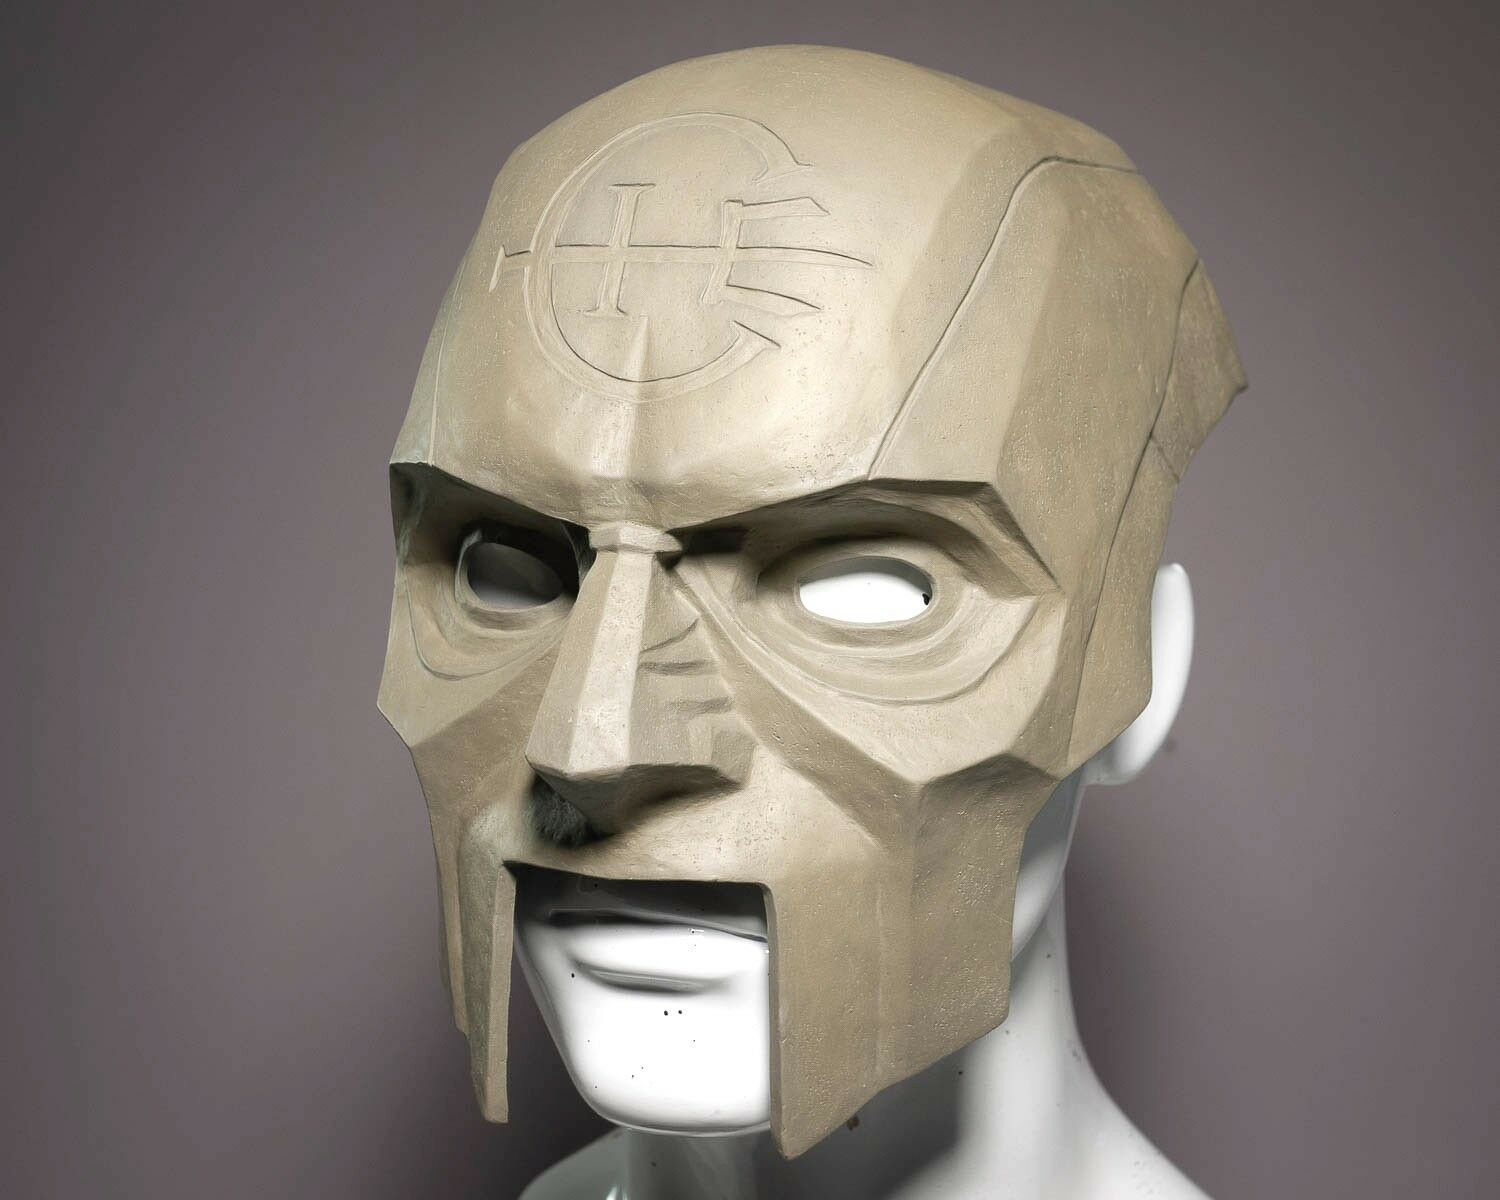 DishonoROT 2 Karnaca Overseer Mask for Costume or Cosplay - DIY Cold-Cast Brass